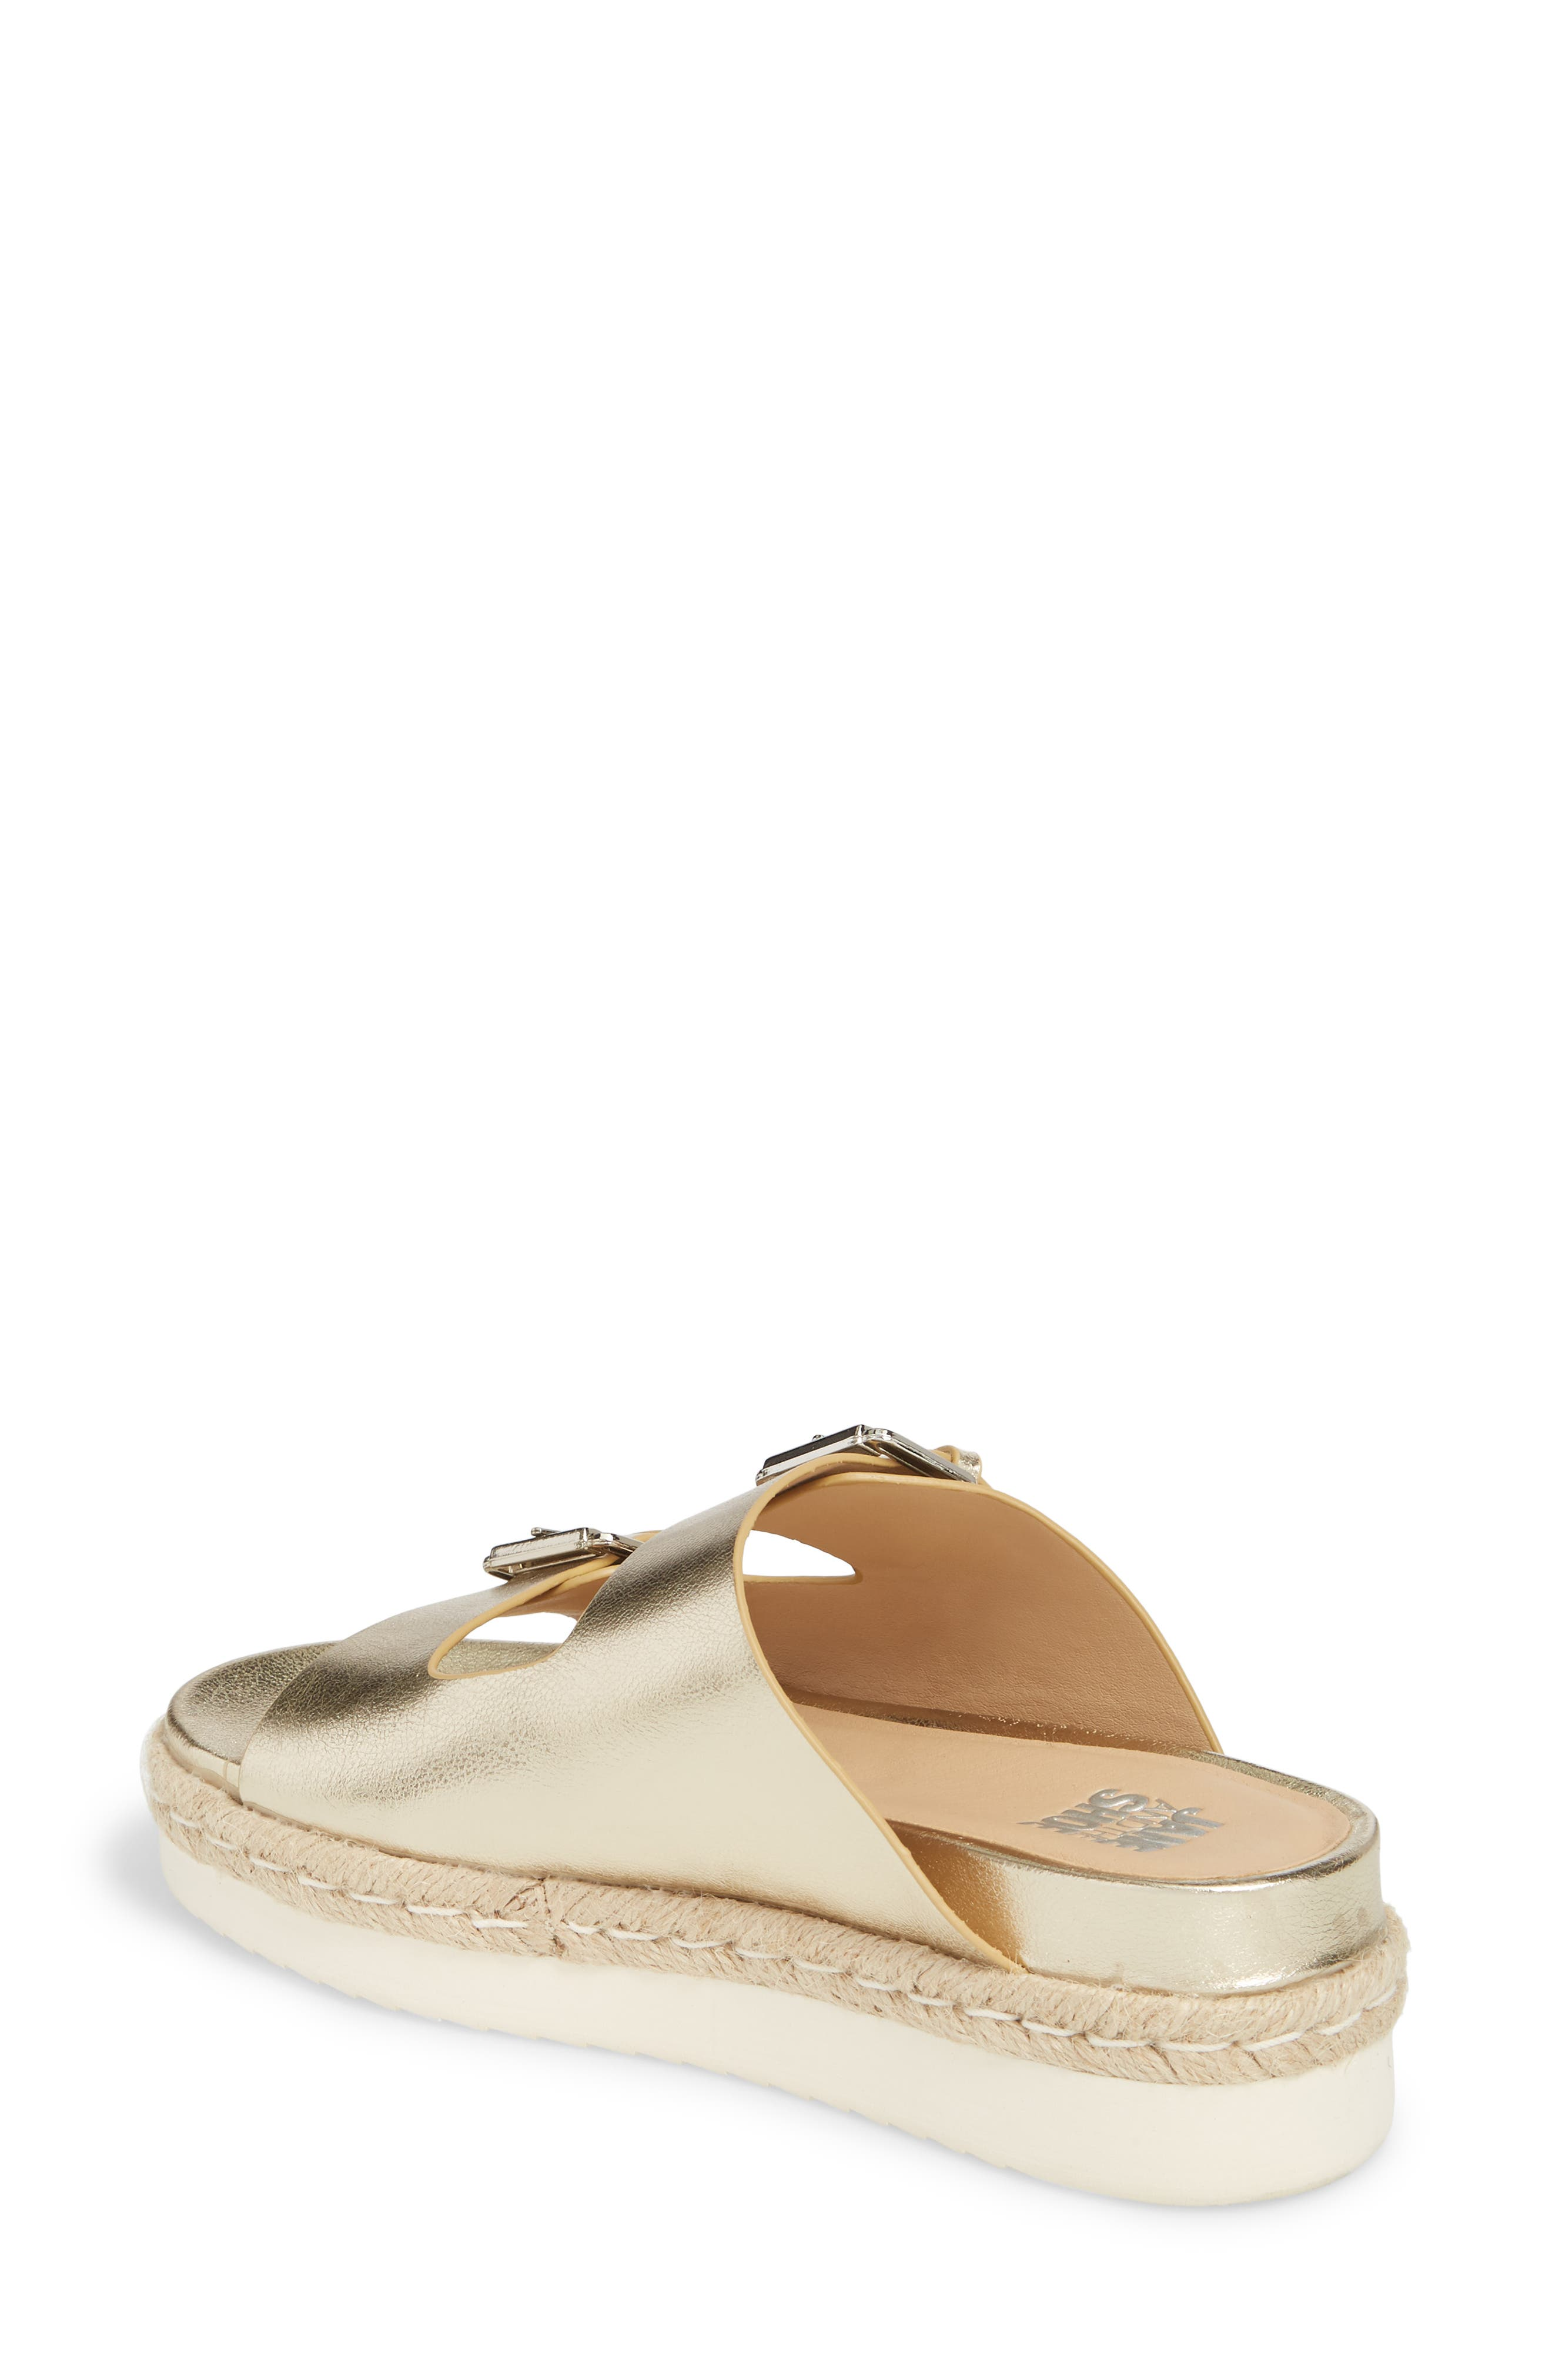 Womens Jane And The Shoe Shoes Nordstrom Khalista Collection Flip Flops Flat Sandal Silver